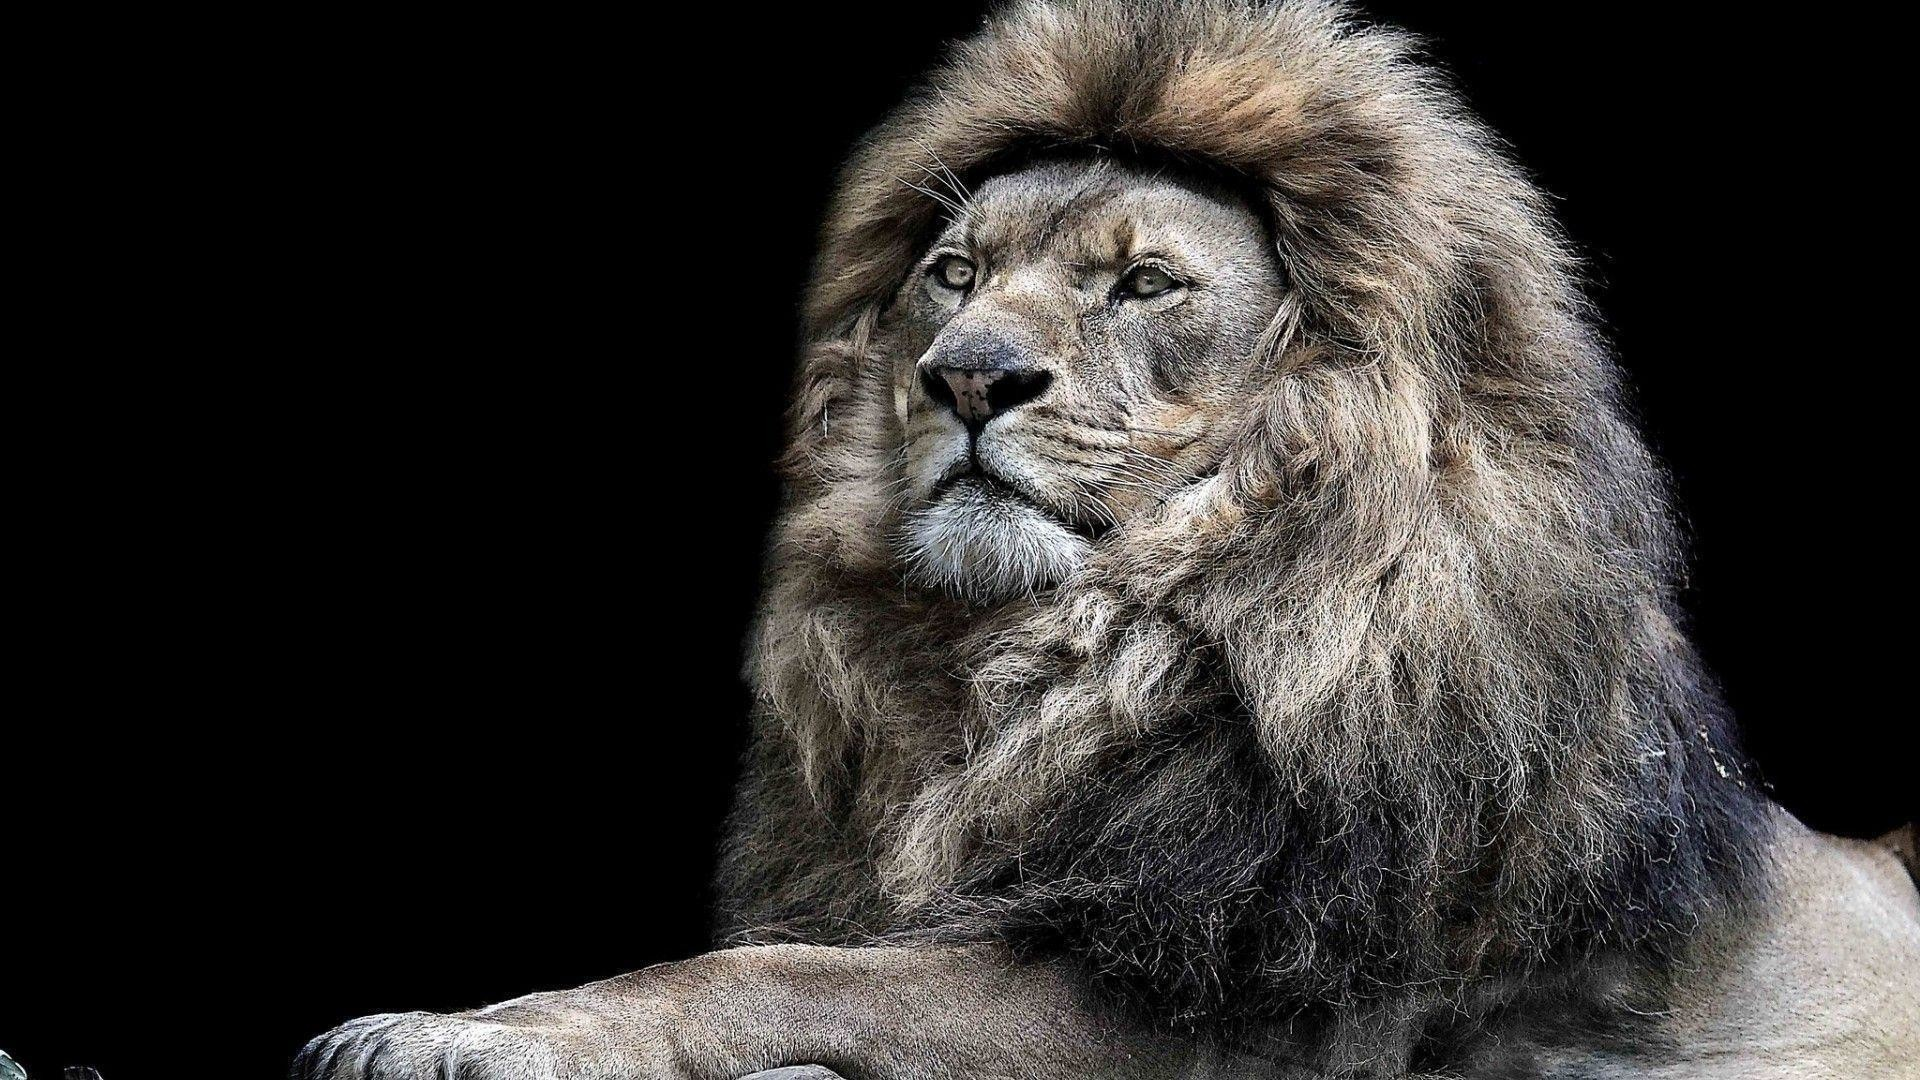 Res: 1920x1080, Animal Wallpapers. Download the following Roaring Lion ...